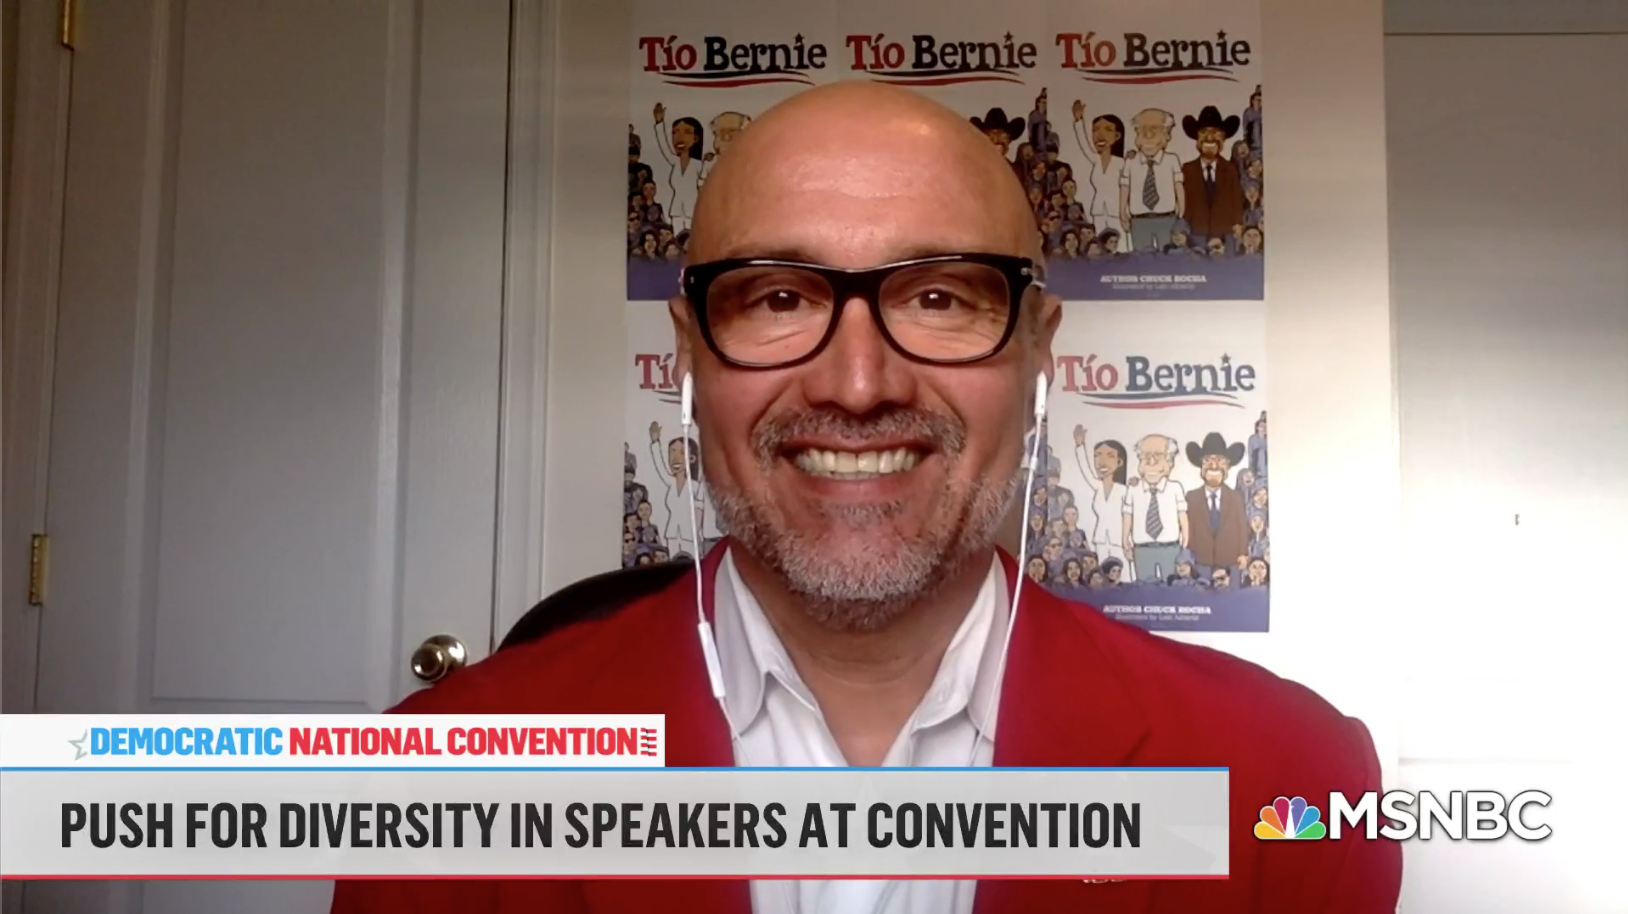 Making the case for Latino voter support at the DNC